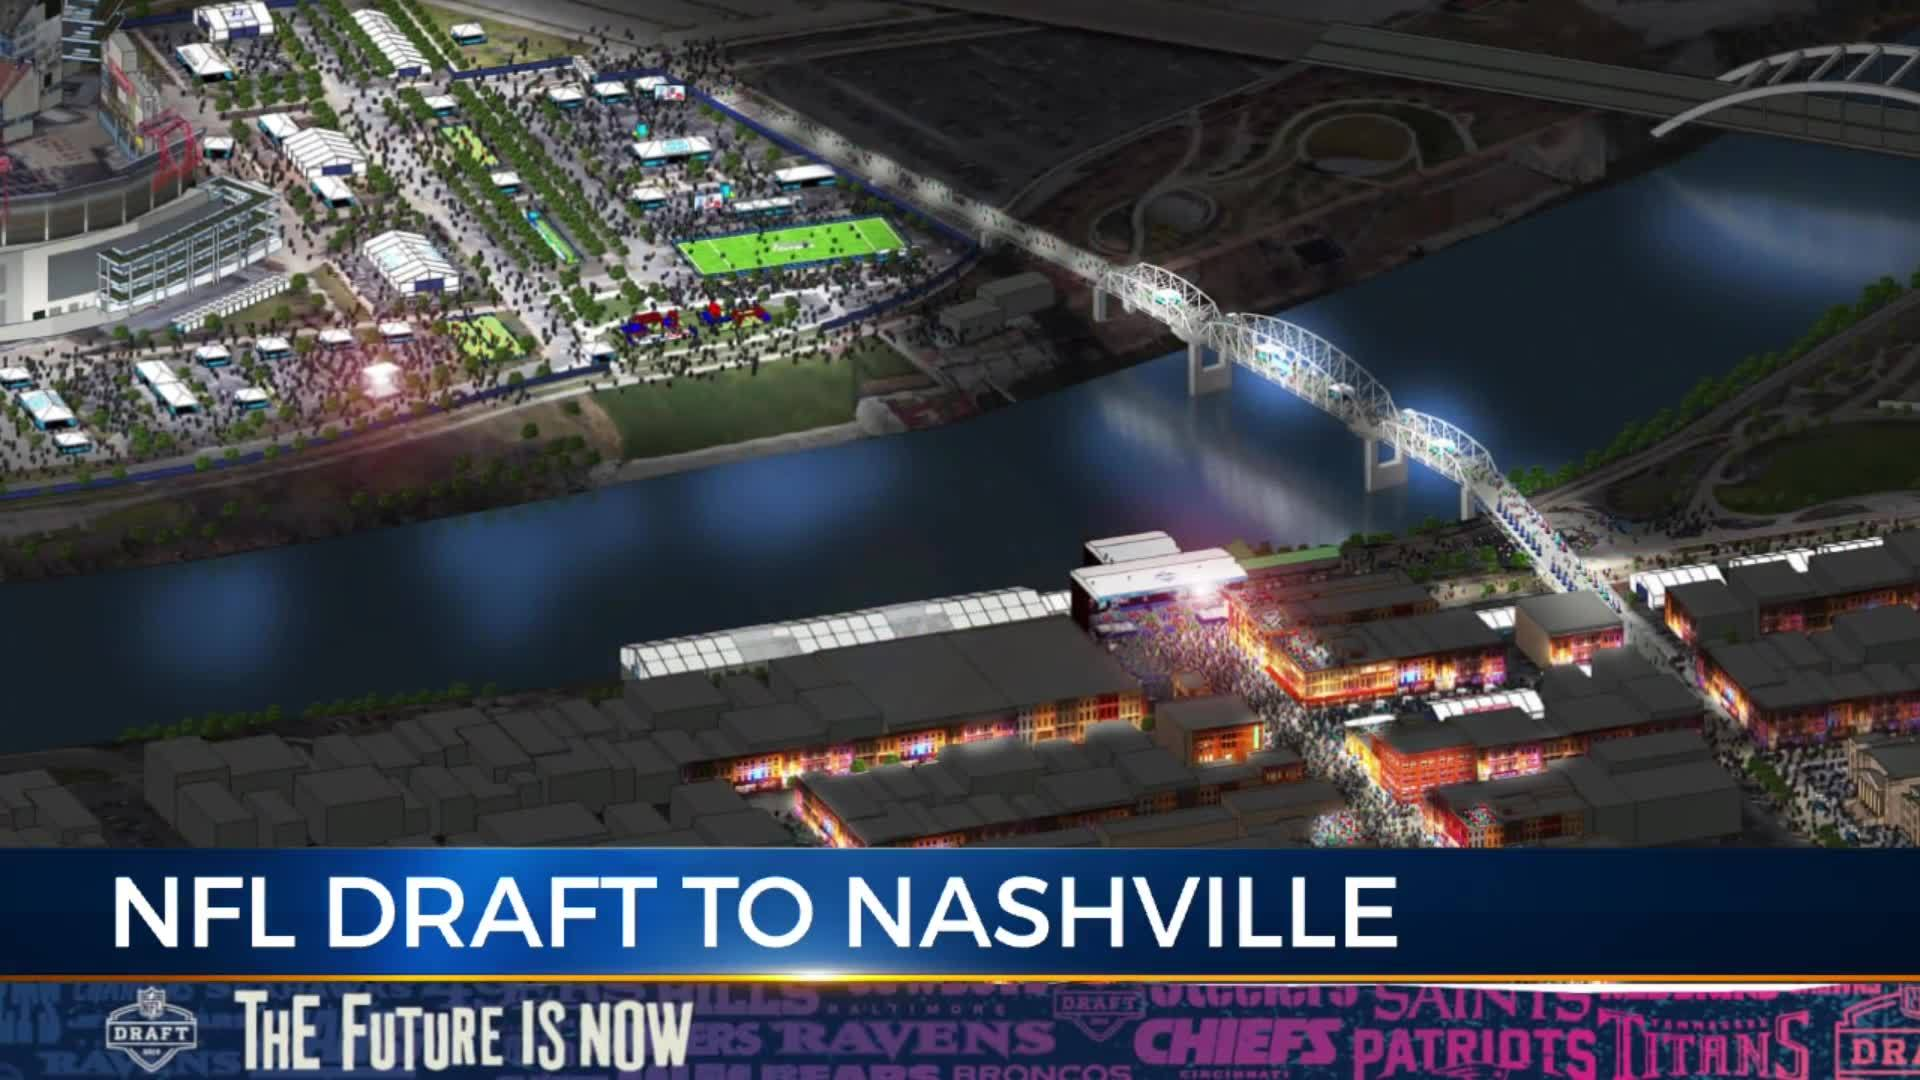 NFL_draft_layout_downtown_released_3_20190130231503